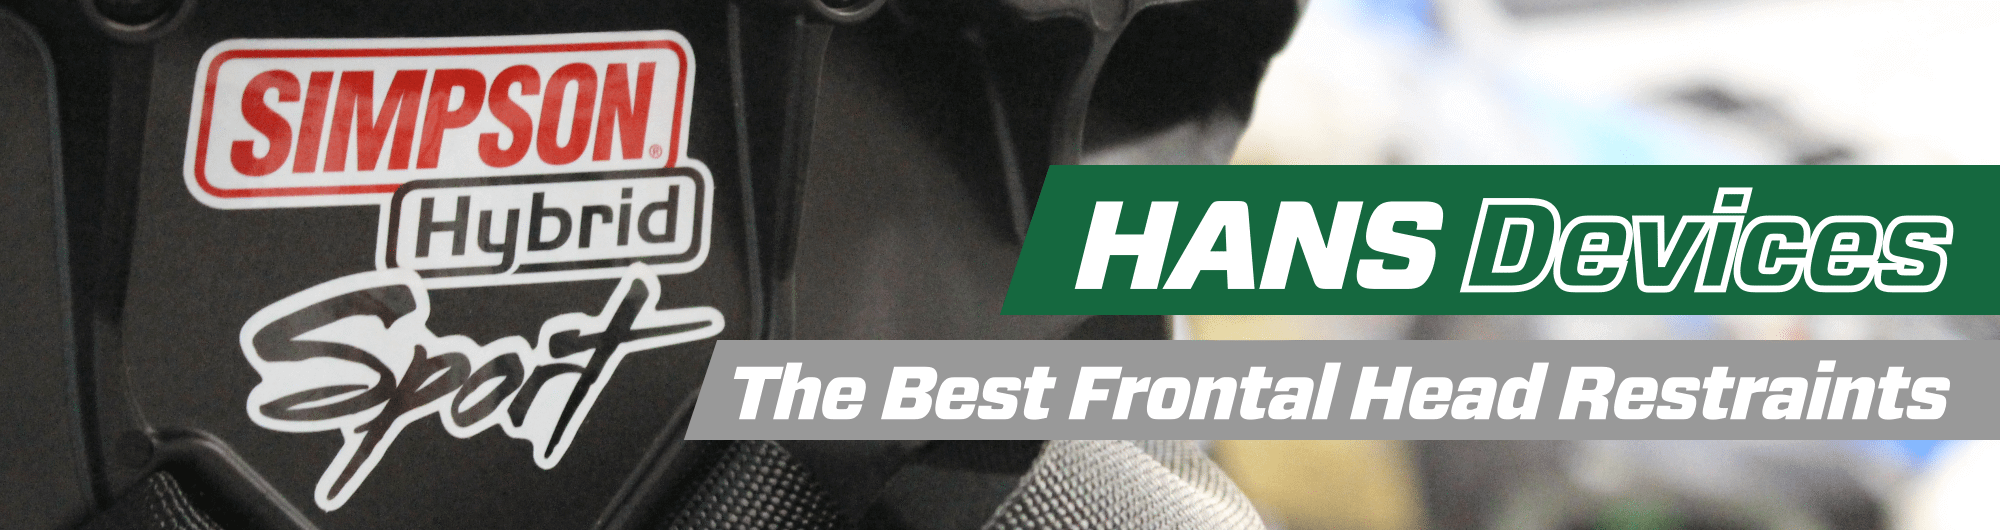 HANS Devices – The Best Frontal Head Restraints – www.gsmperformance.co.uk Hero Image – October 2017